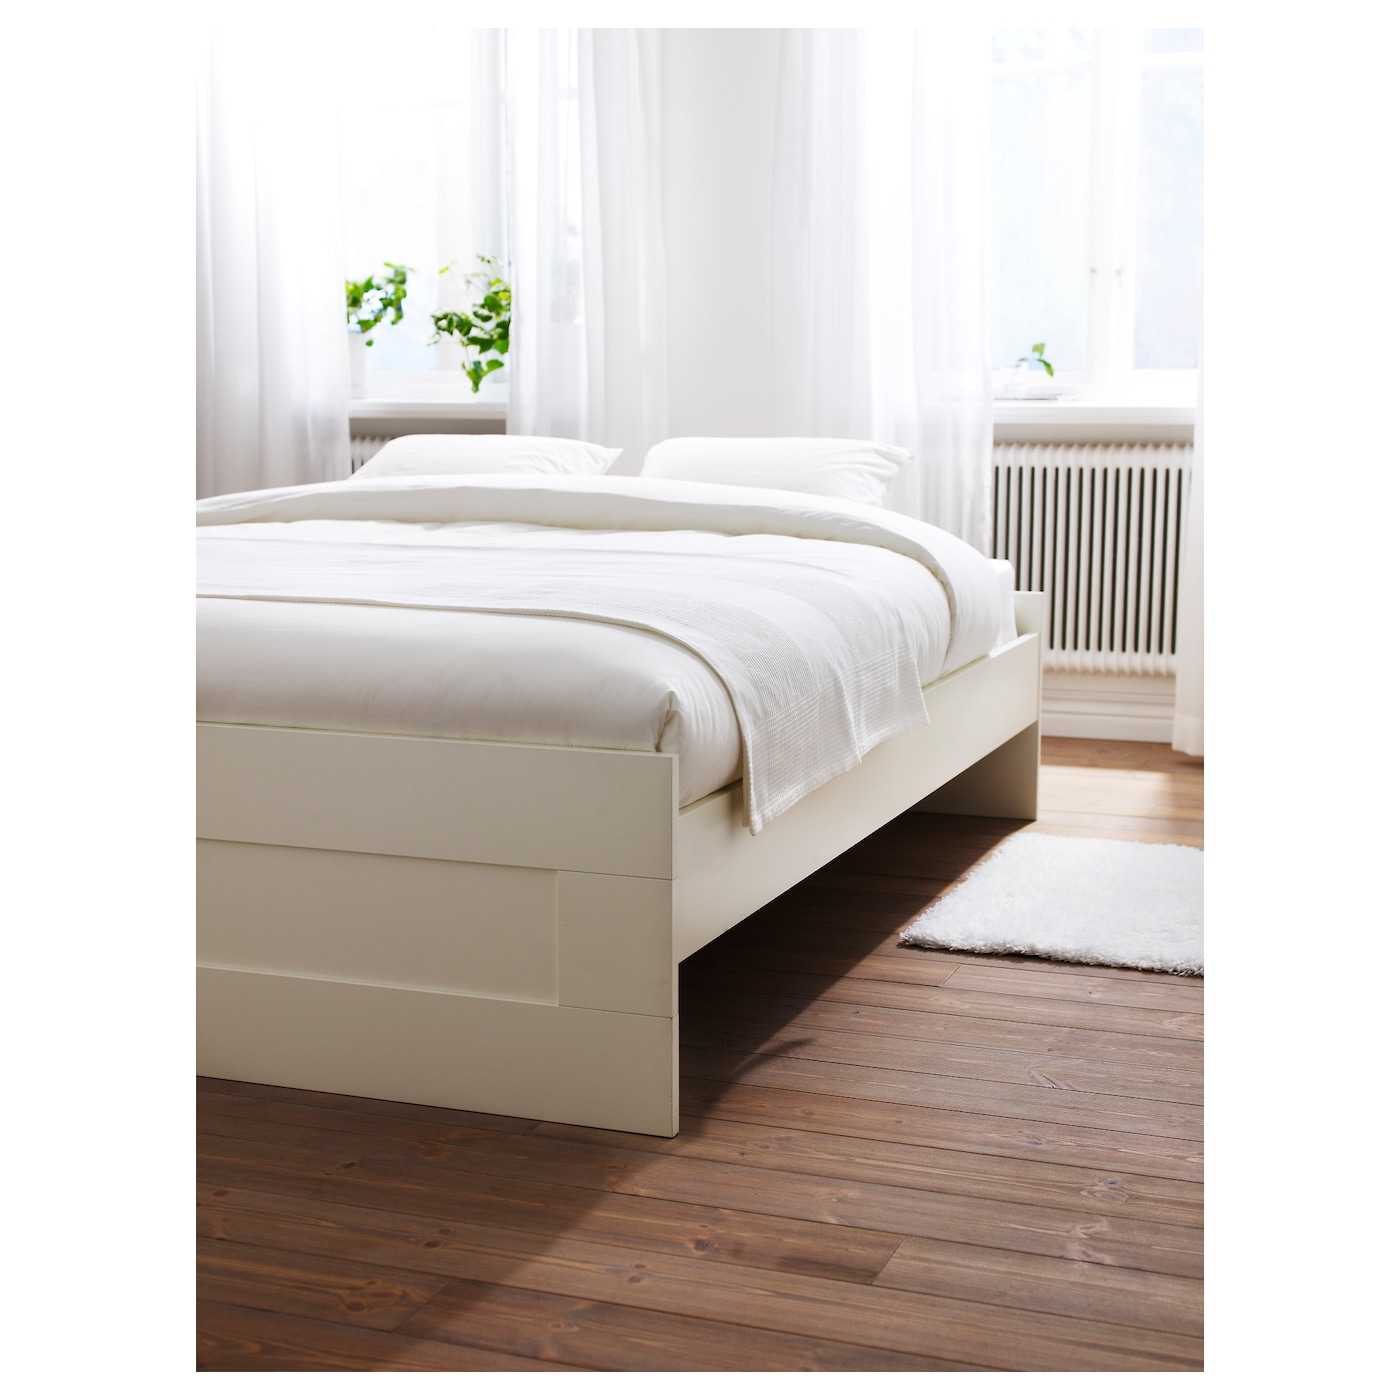 brimnes bed frame white leirsund 180x200 cm ikea. Black Bedroom Furniture Sets. Home Design Ideas